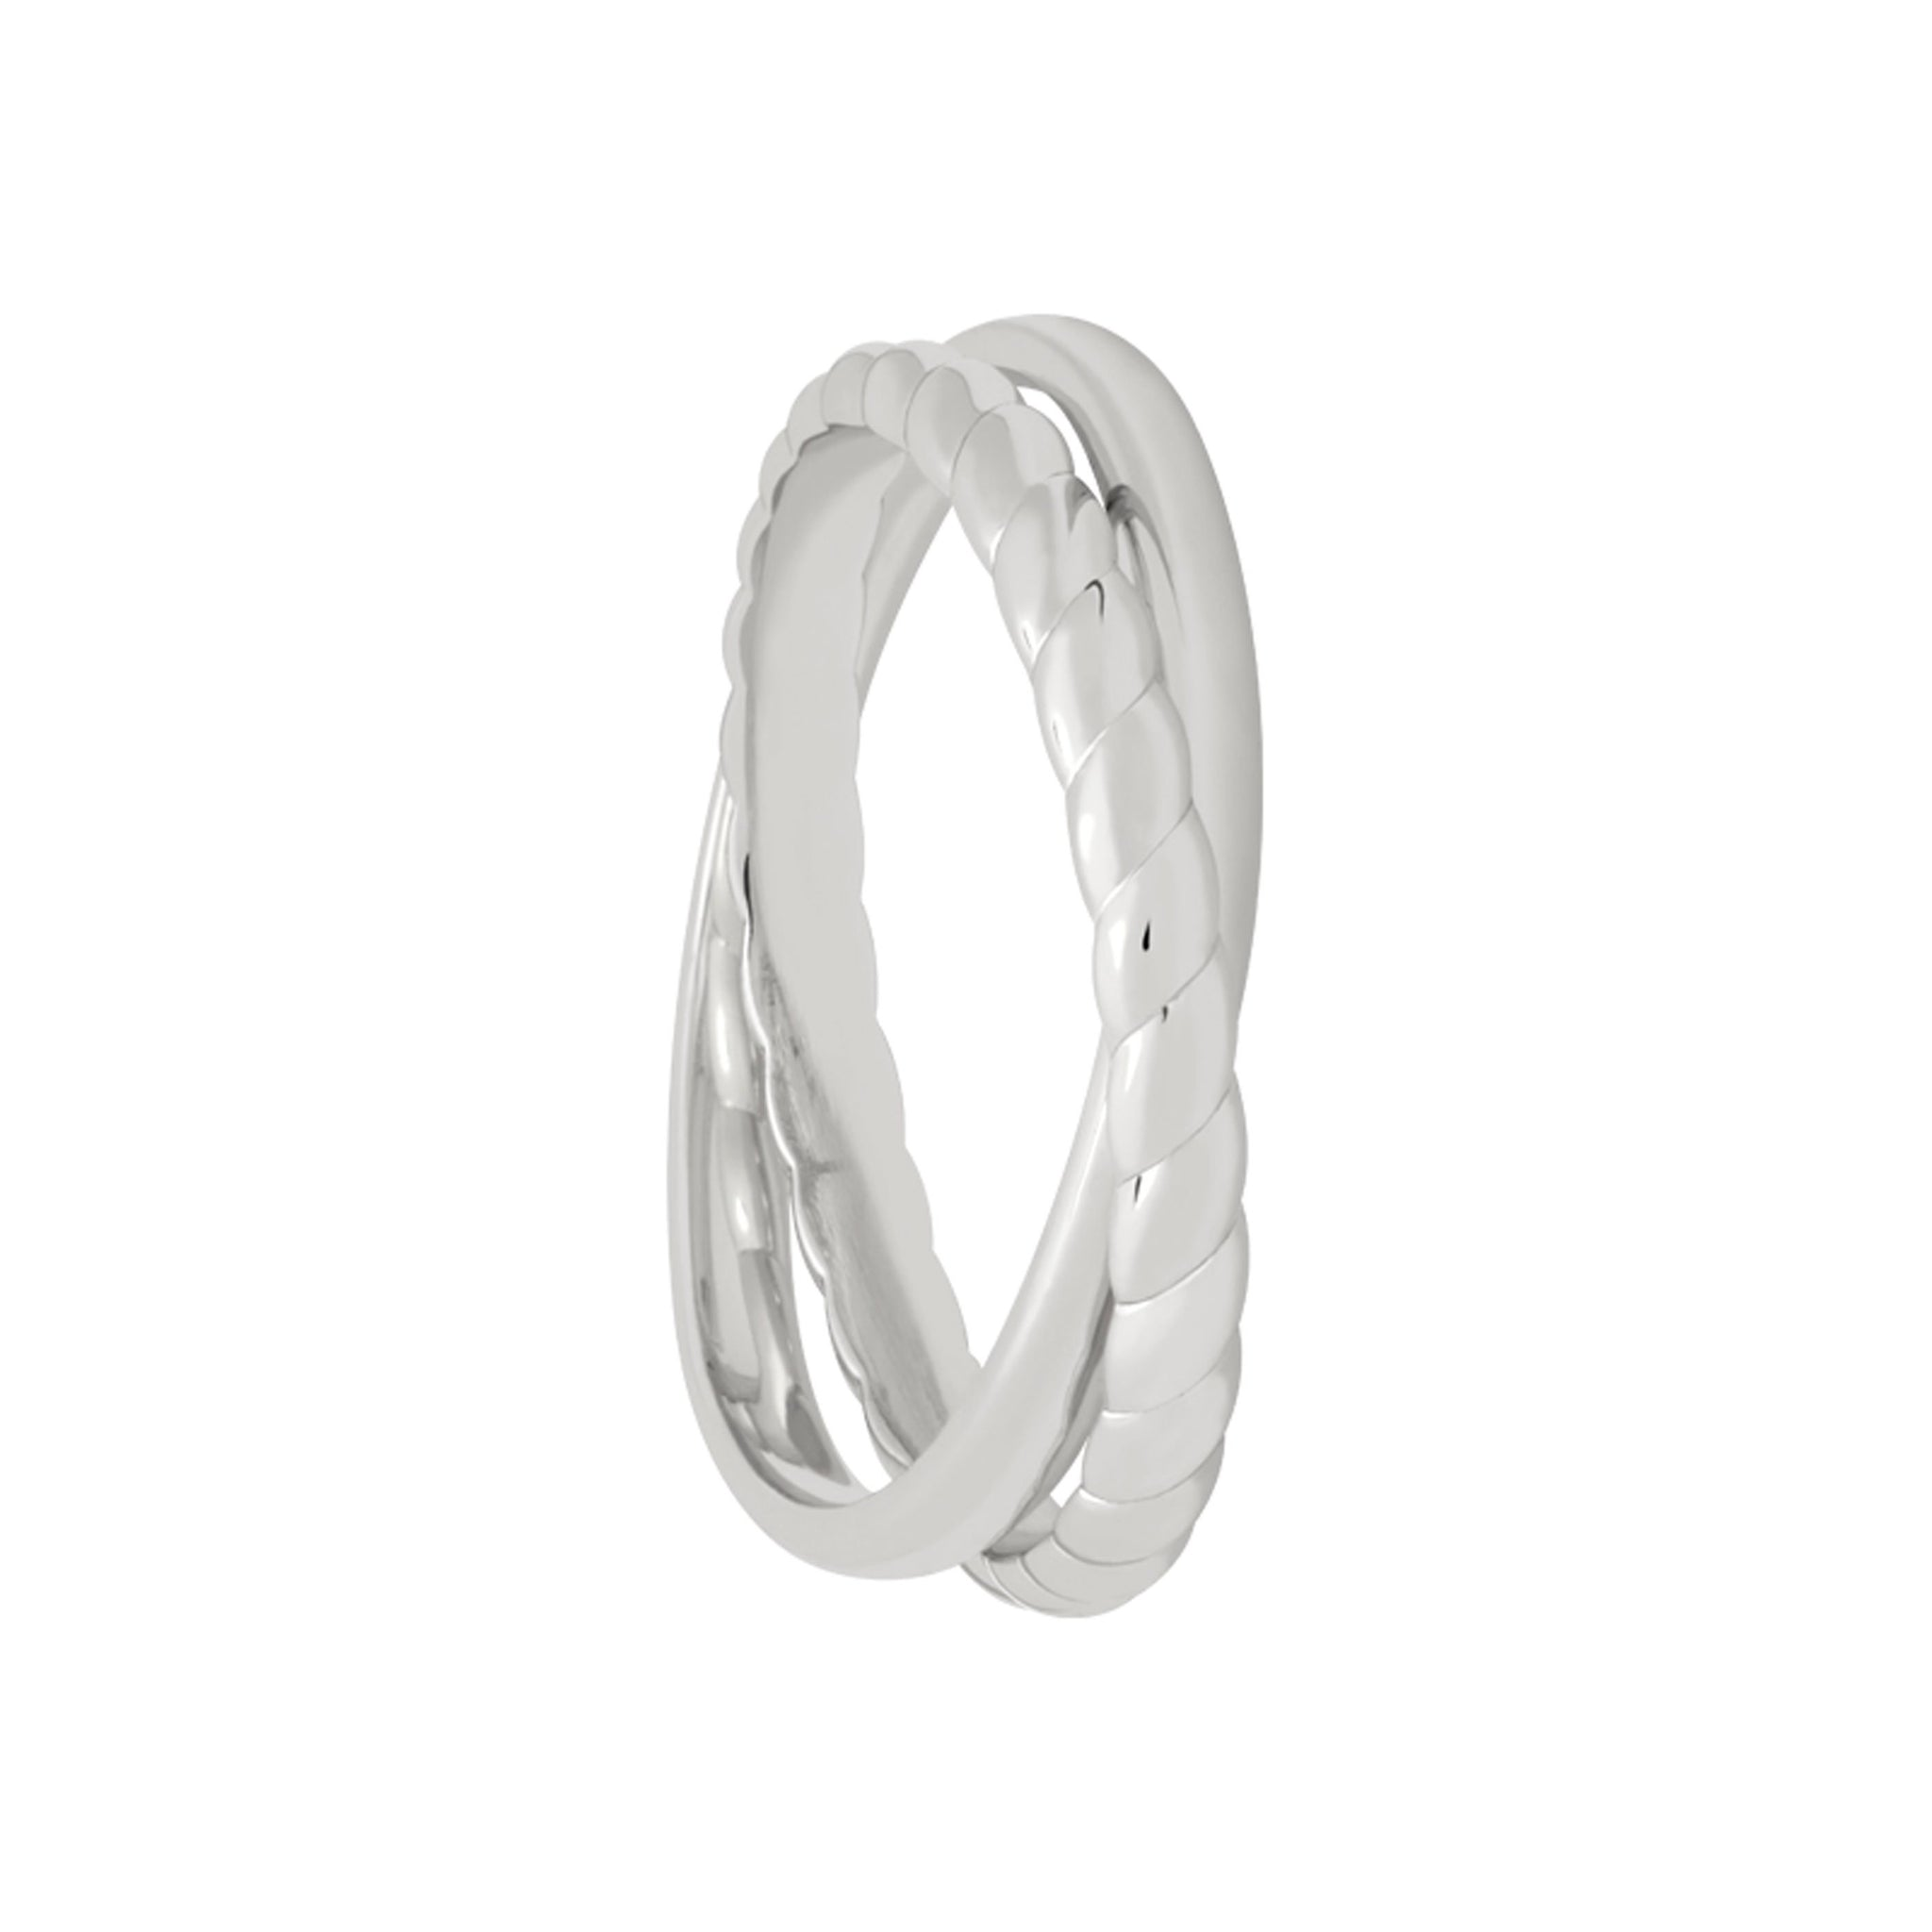 Interlocked Rope & Plain Band Ring in Silver